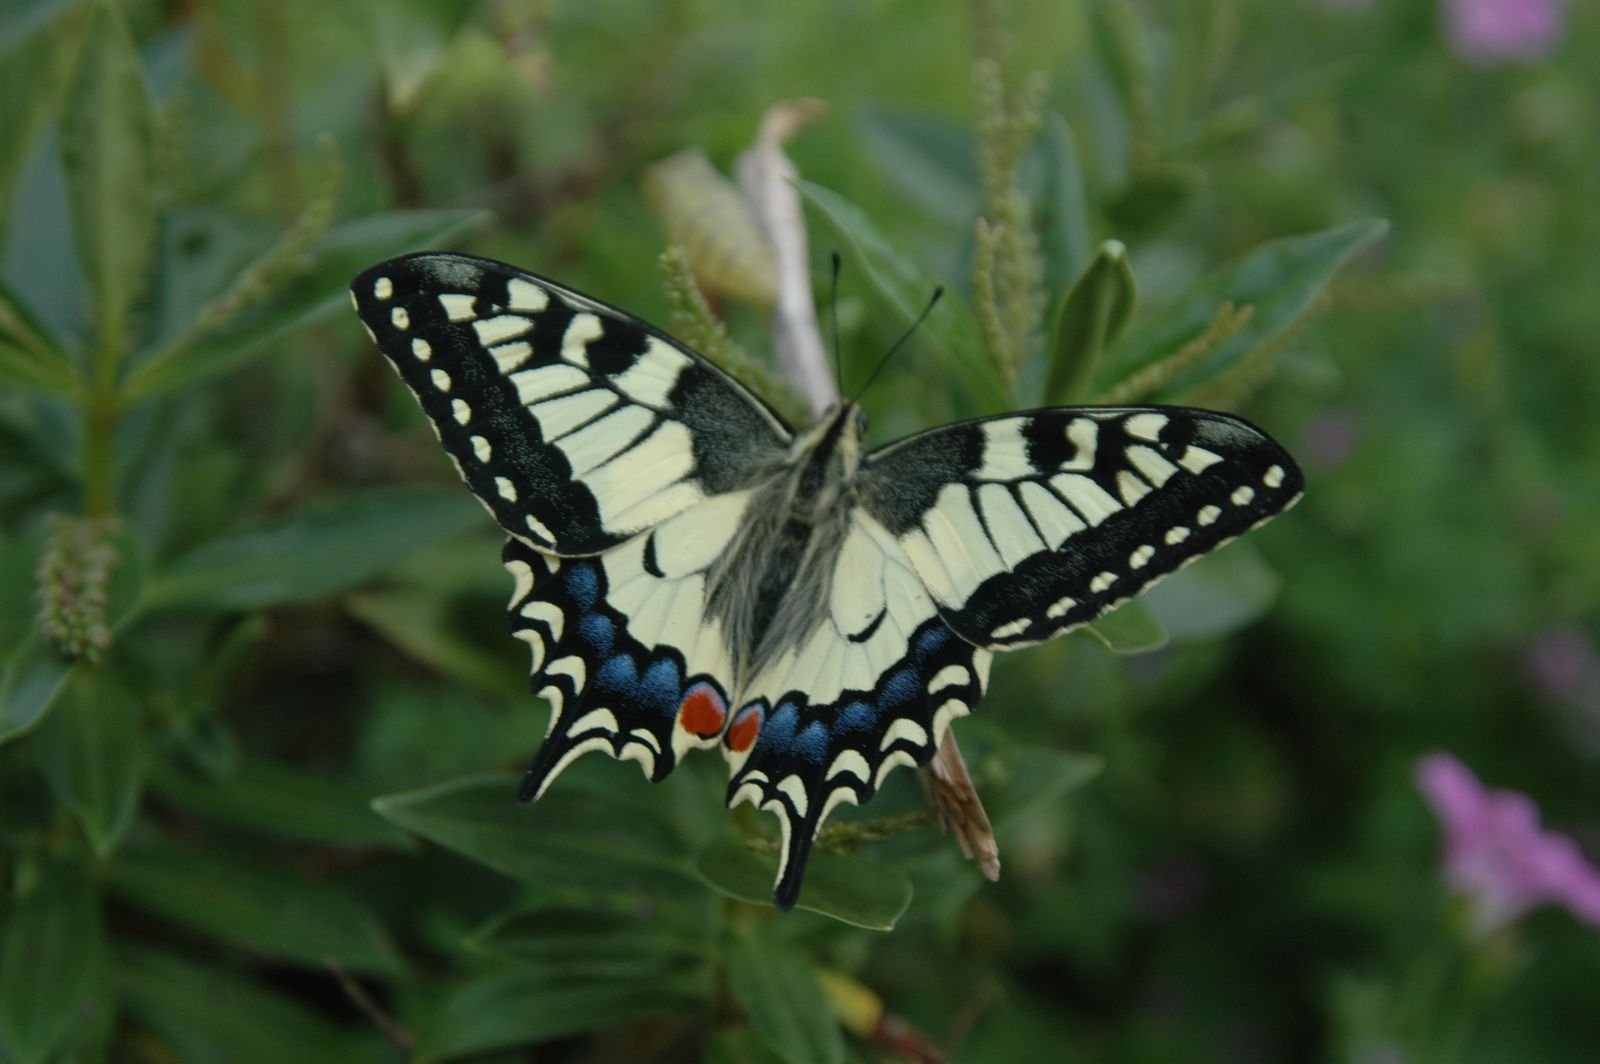 Machaon (Loritel Juin 2010)